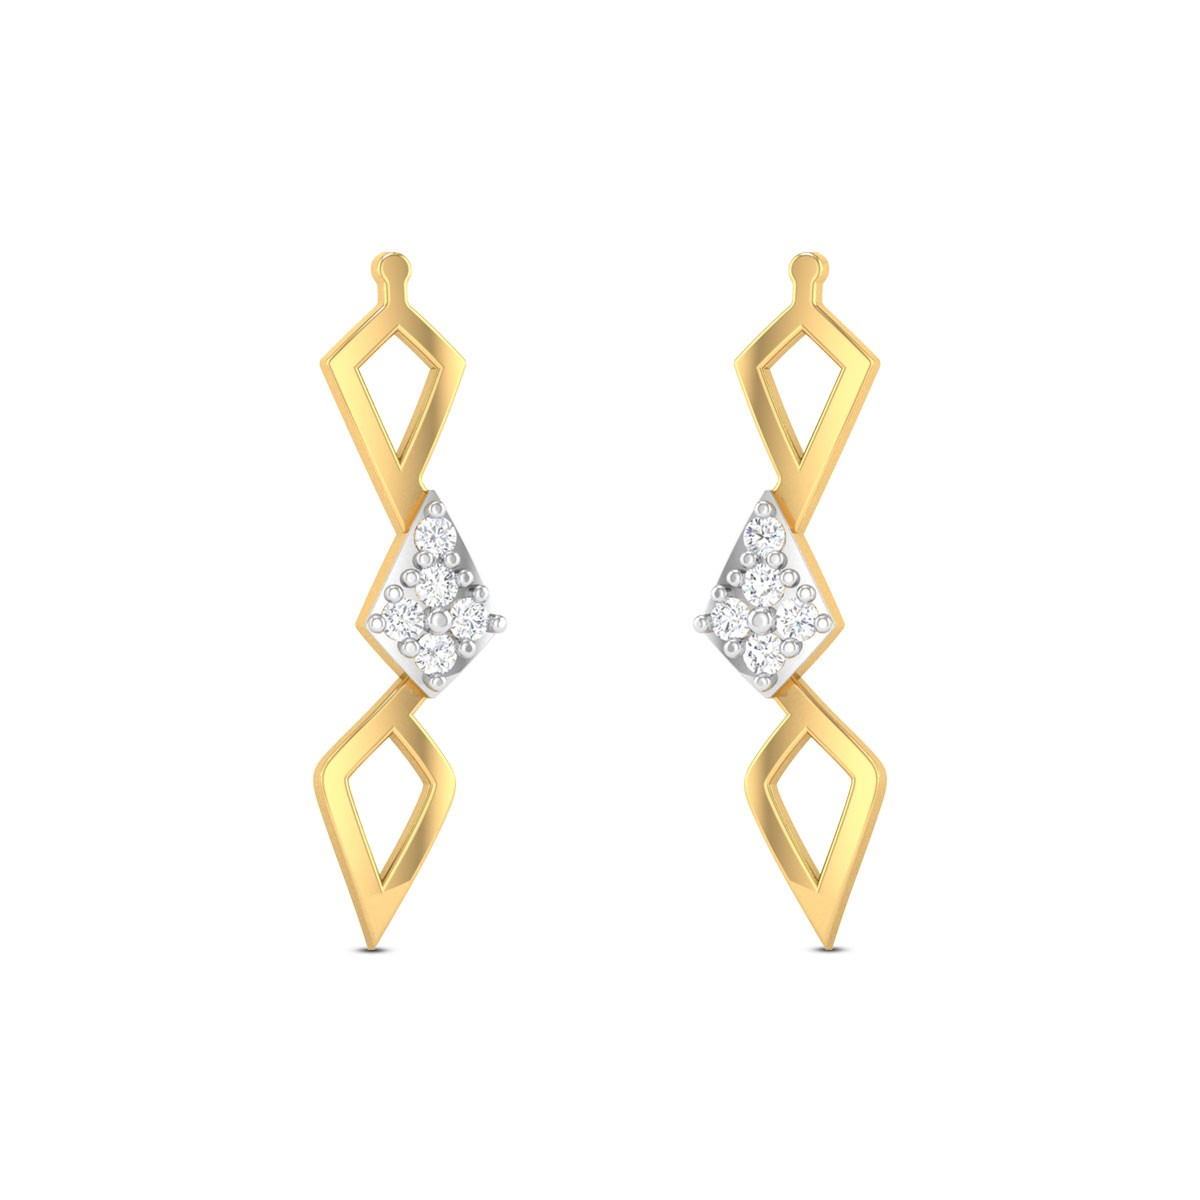 Platonic Solids Diamond Earrings